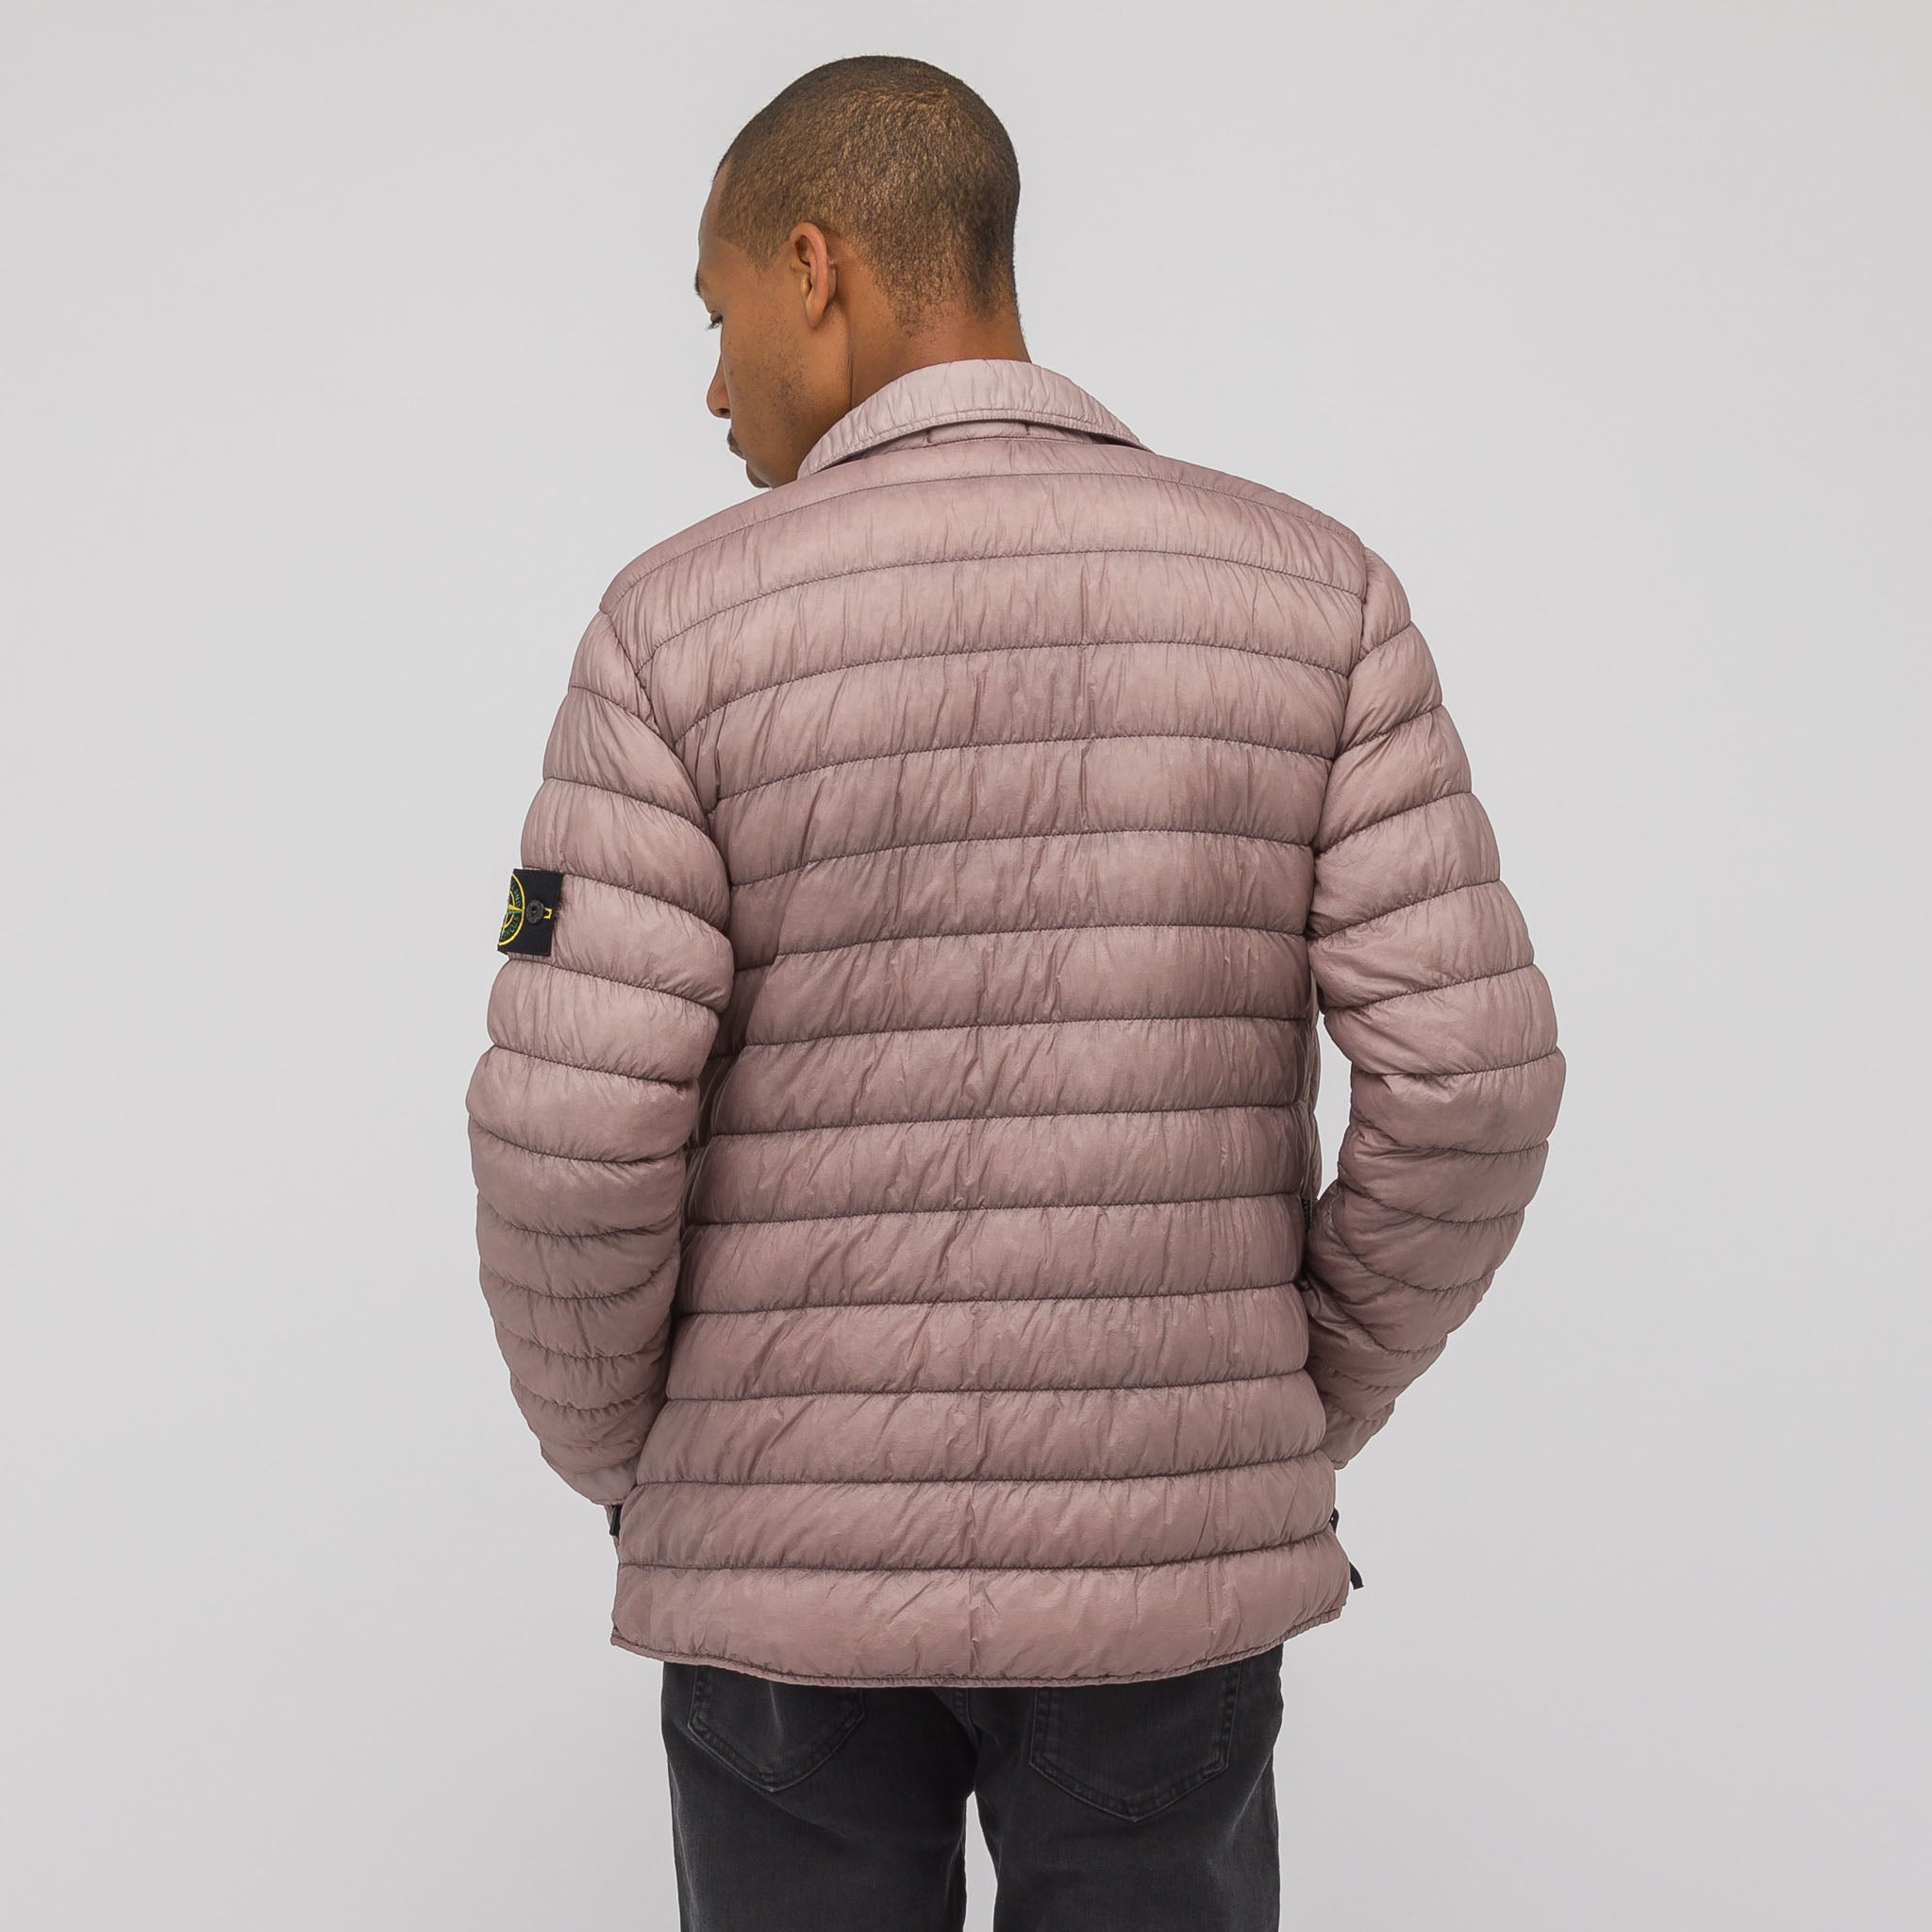 Q0324 Garment Dyed Micro Down Packable Jacket in Rose Quartz